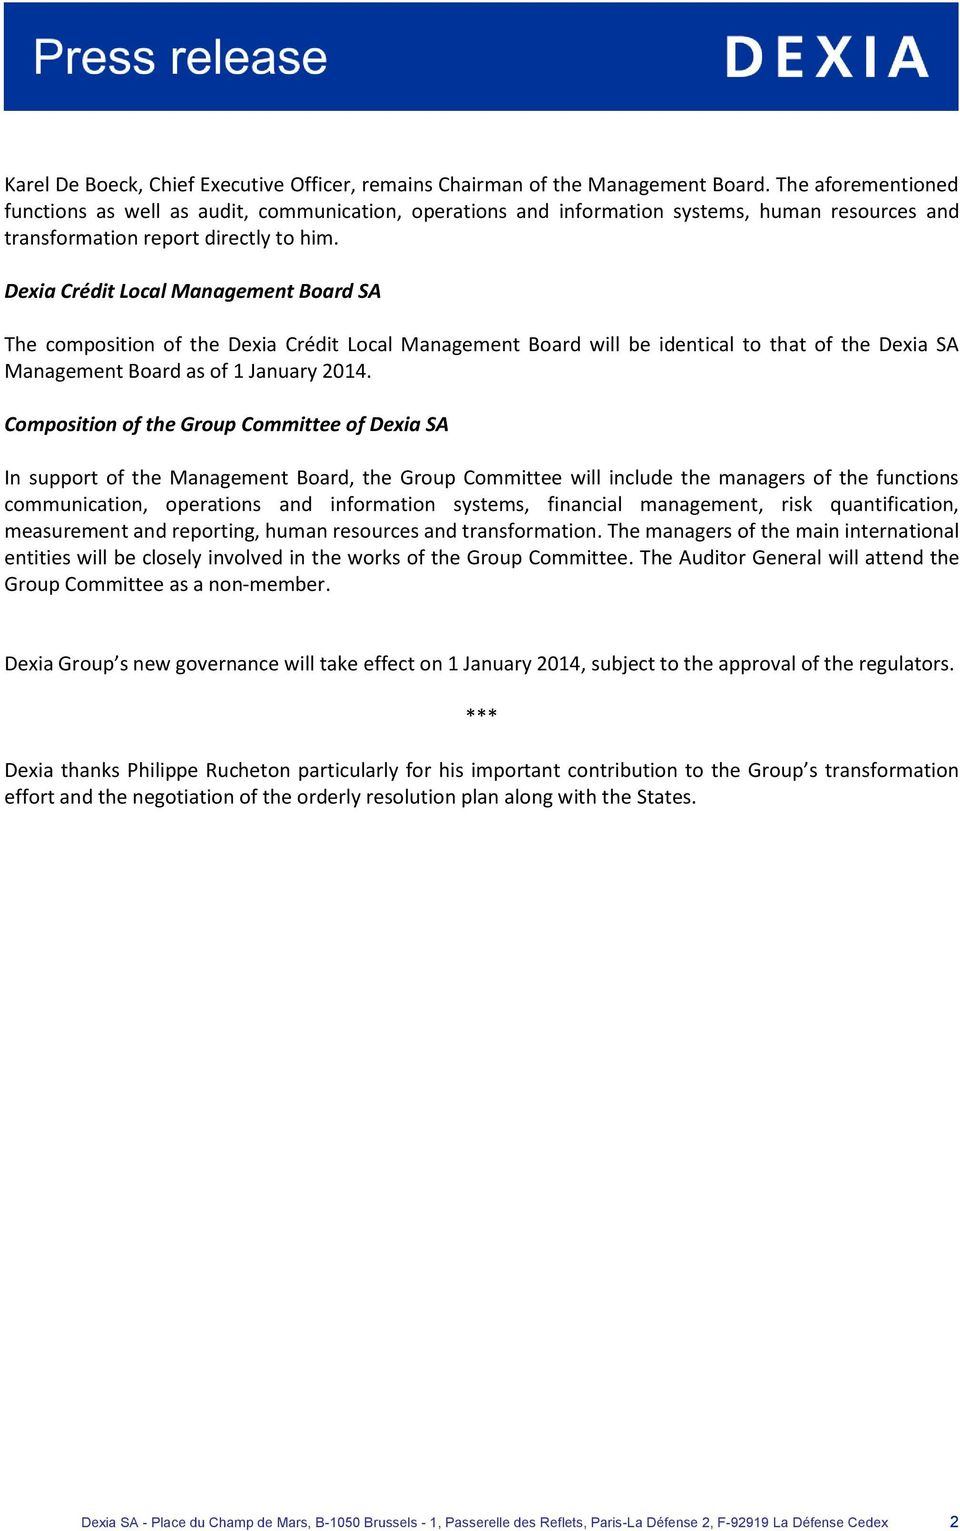 Dexia Crédit Local Management Board SA The composition of the Dexia Crédit Local Management Board will be identical to that of the Dexia SA Management Board as of 1 January 2014.